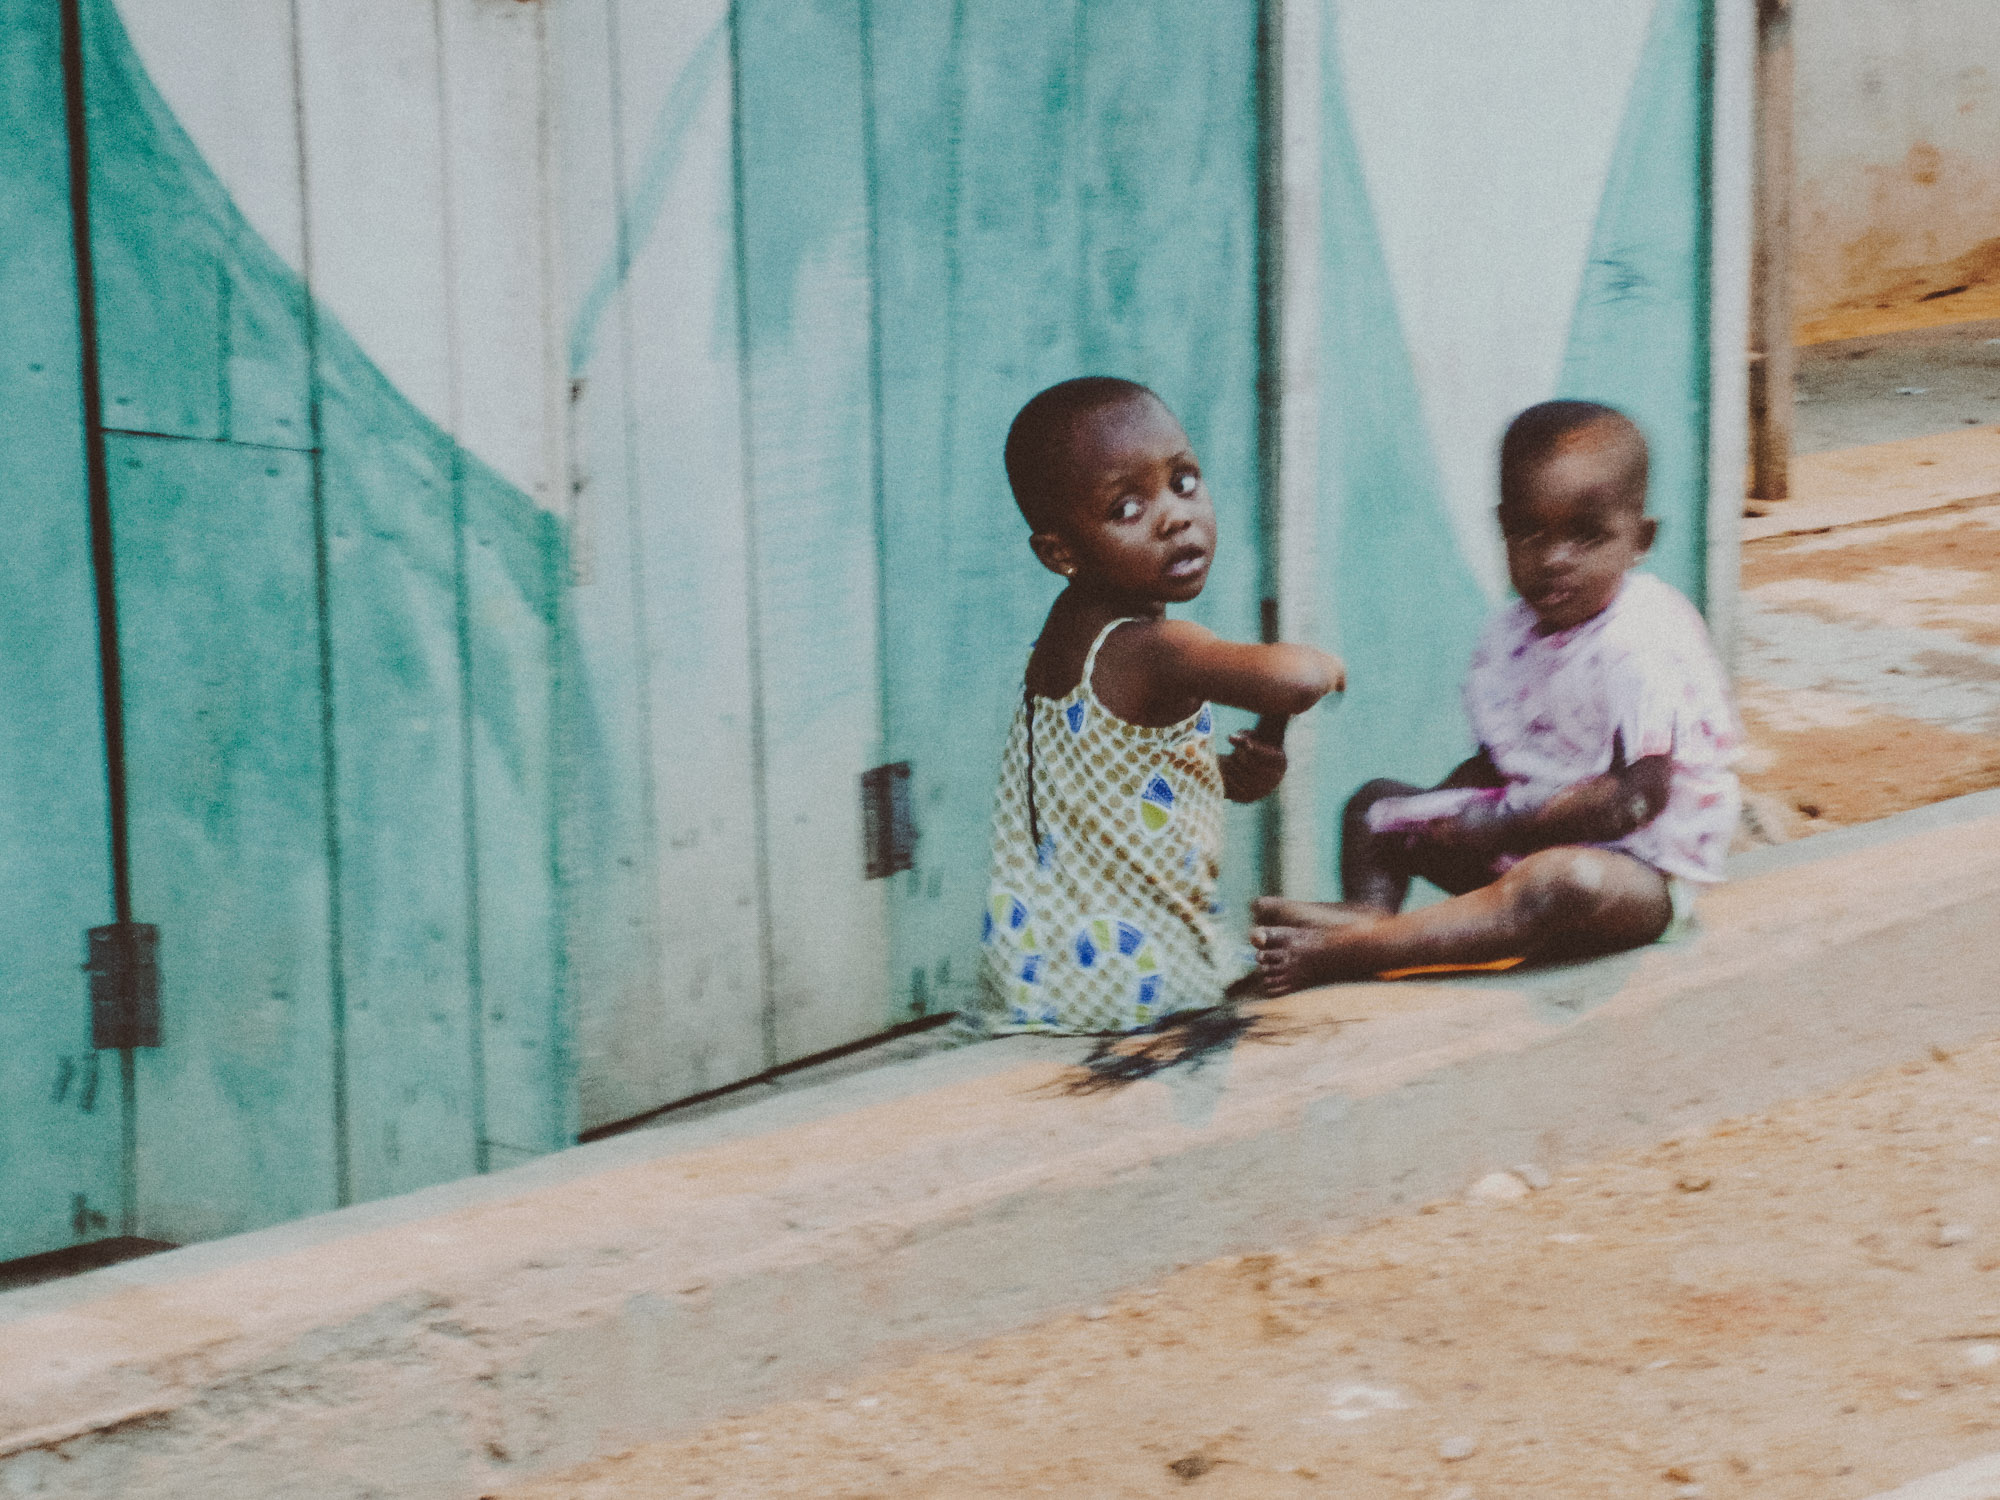 Children playing in the street in Cape Coast | Photo by Caroline Taft,  The Brazen Gourmand